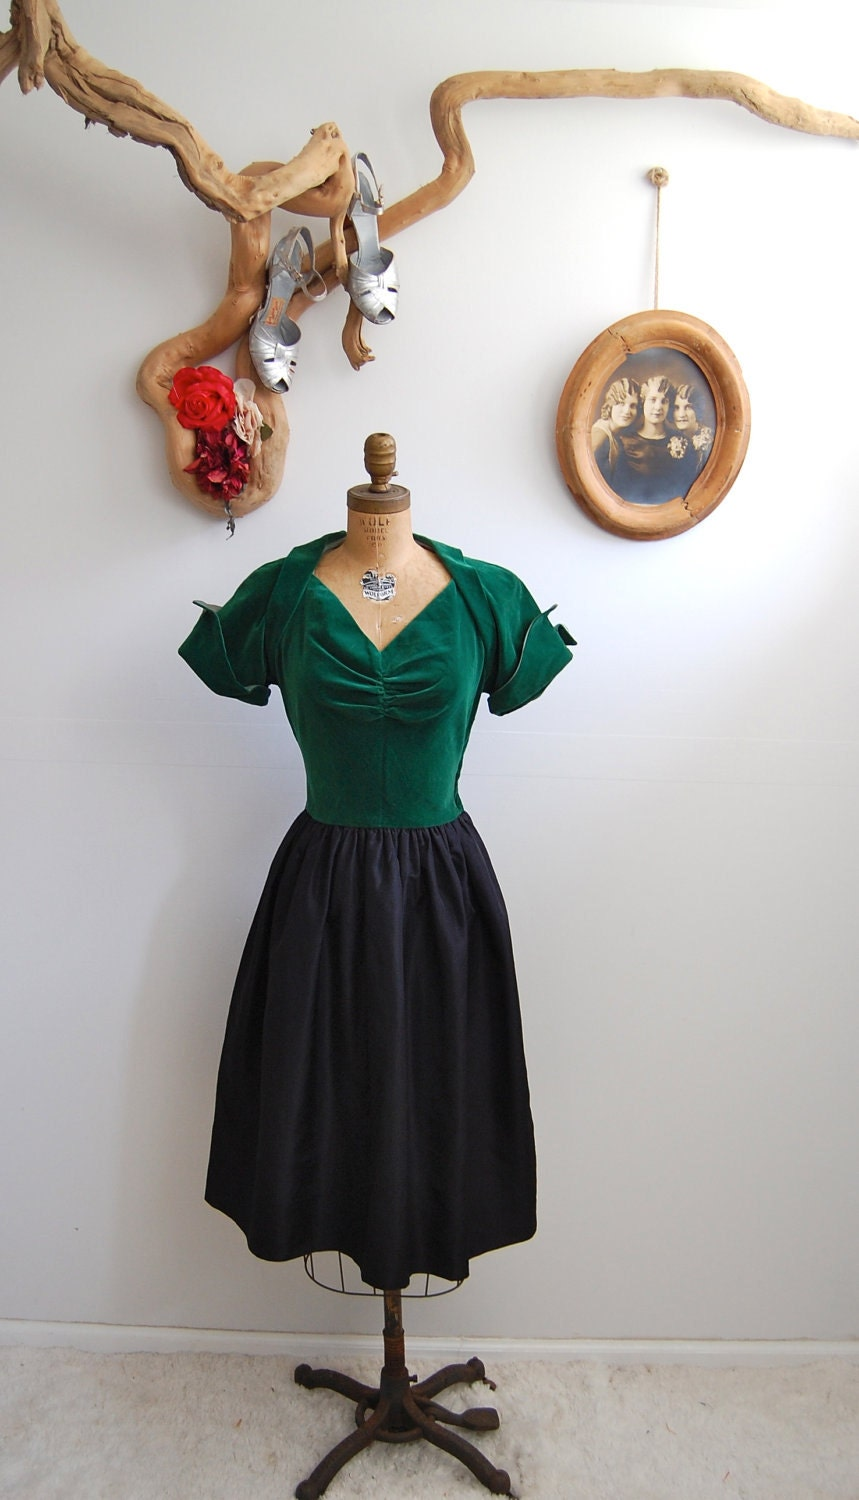 Vintage 1940s Dress - 40s Cocktail Dress - The Gemma